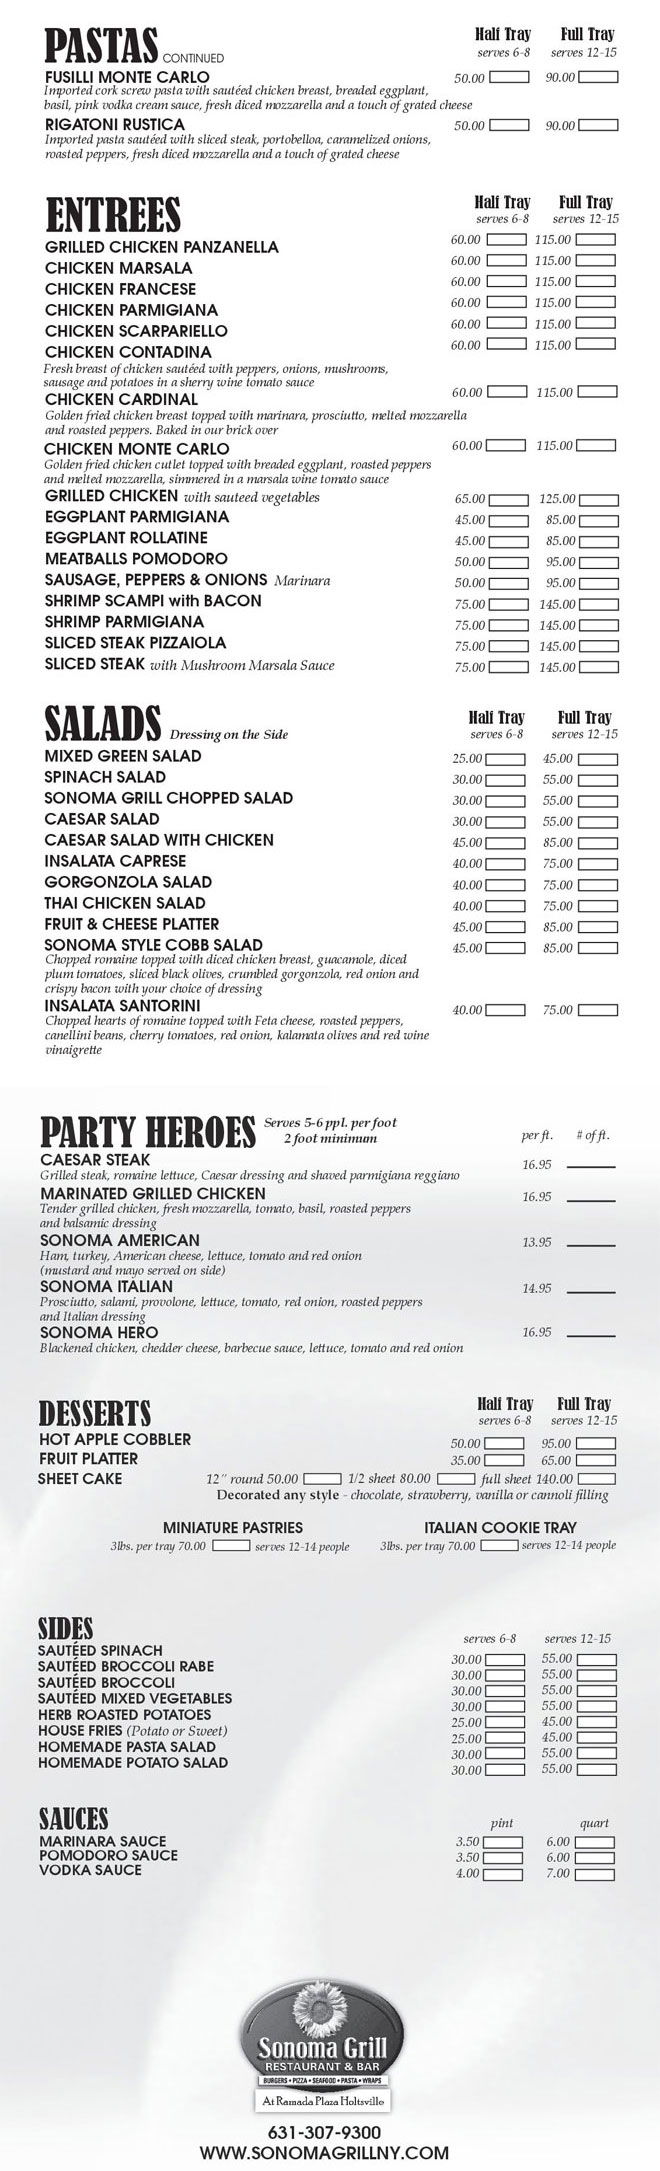 Off-Premise Catering Menu